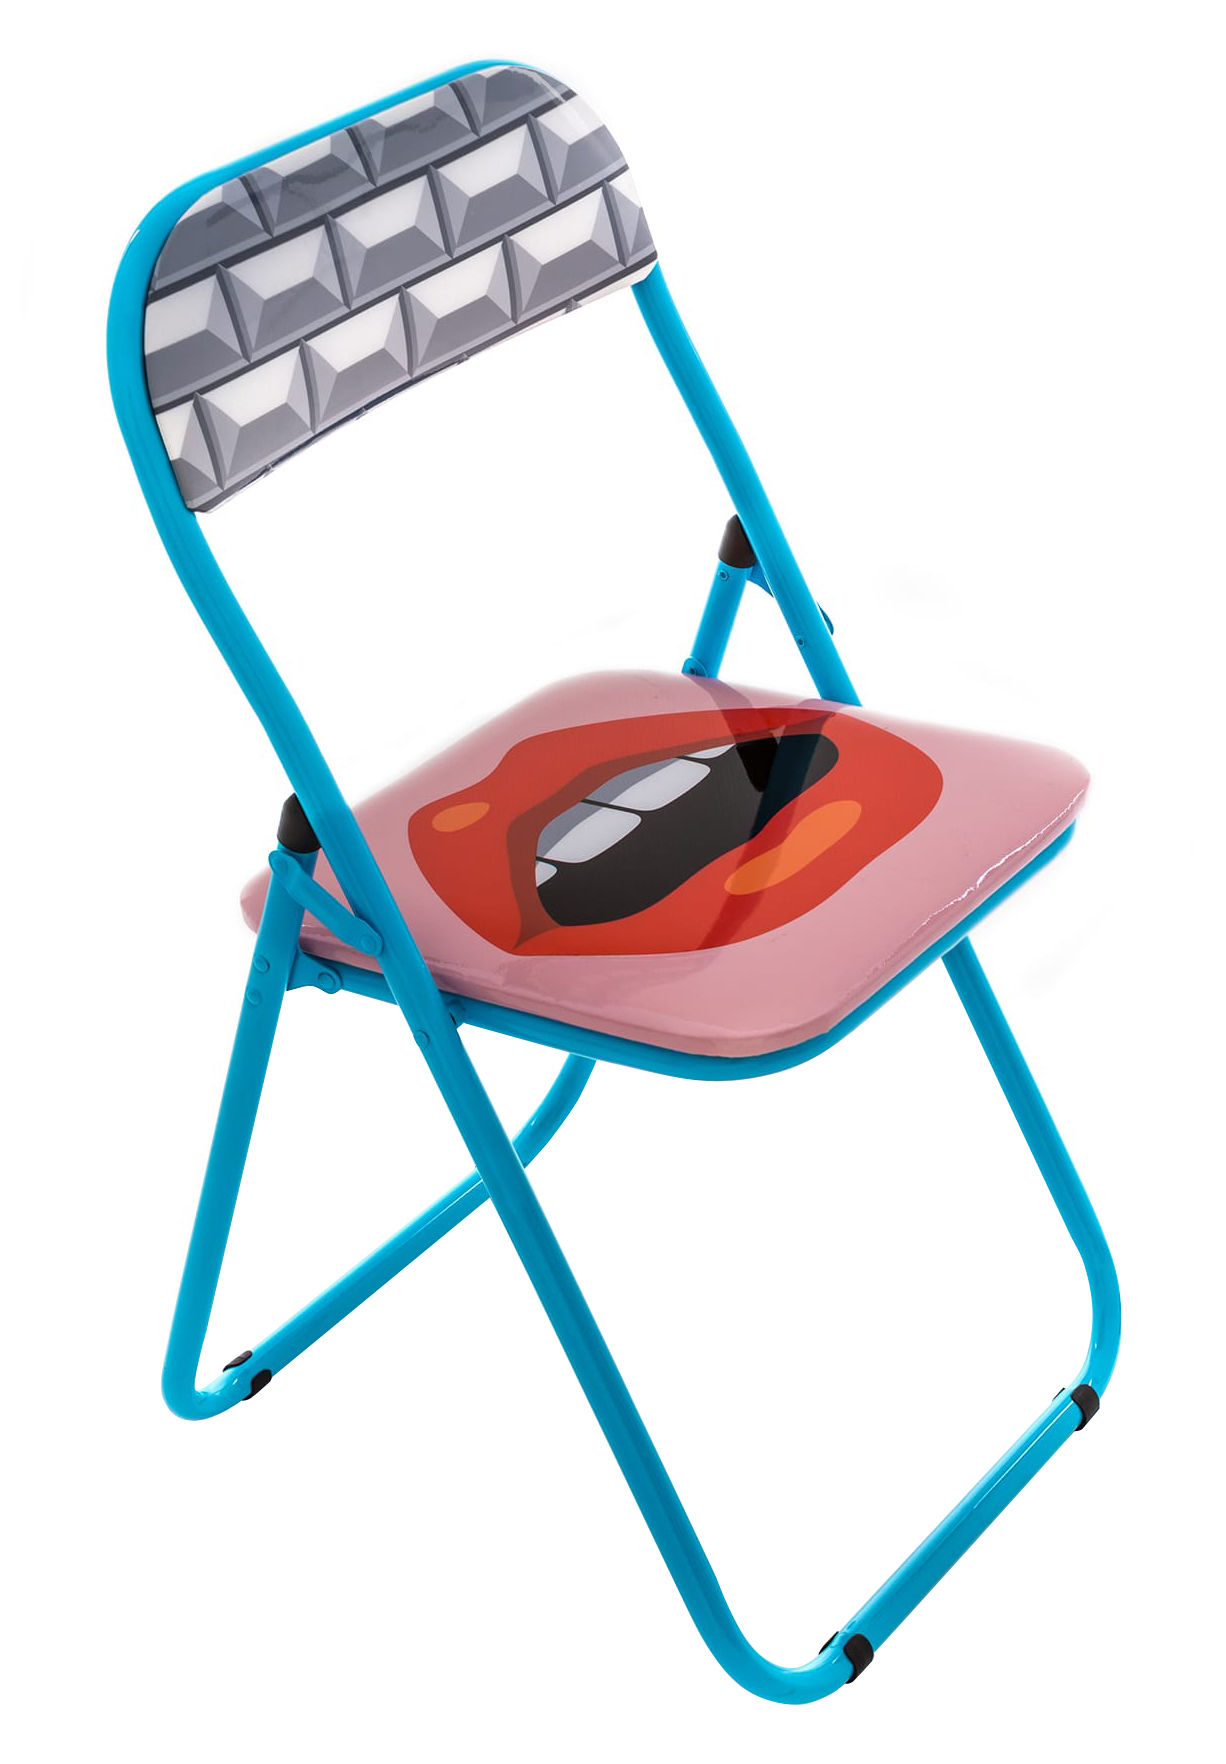 folding chair uk camping chairs walmart bouche padded mouth by seletti made in design